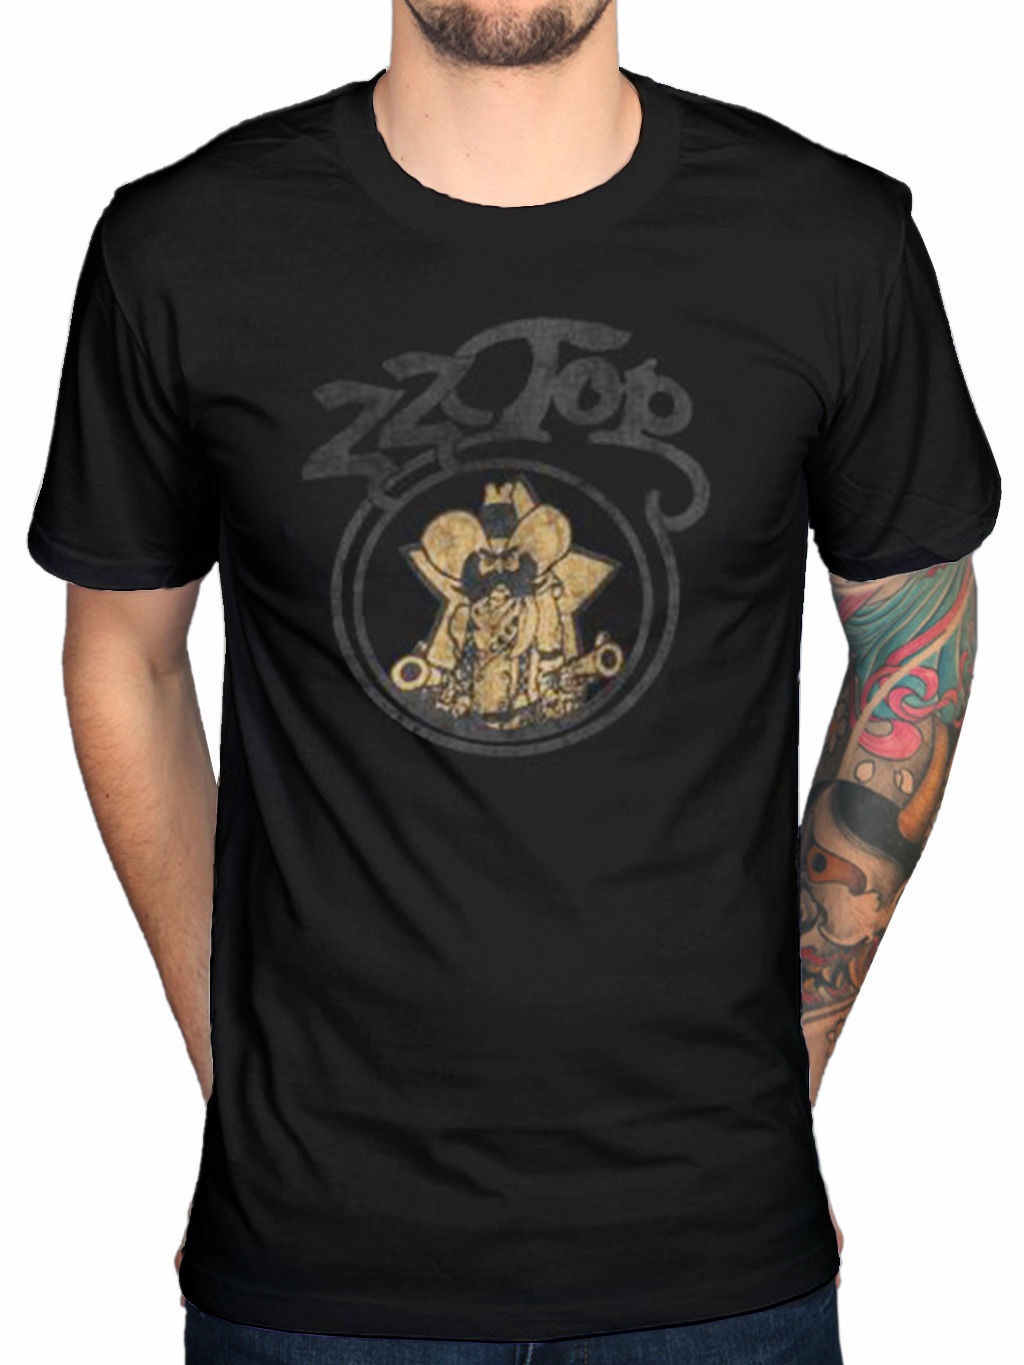 Design t shirt and get paid - Zz Top T Shirts